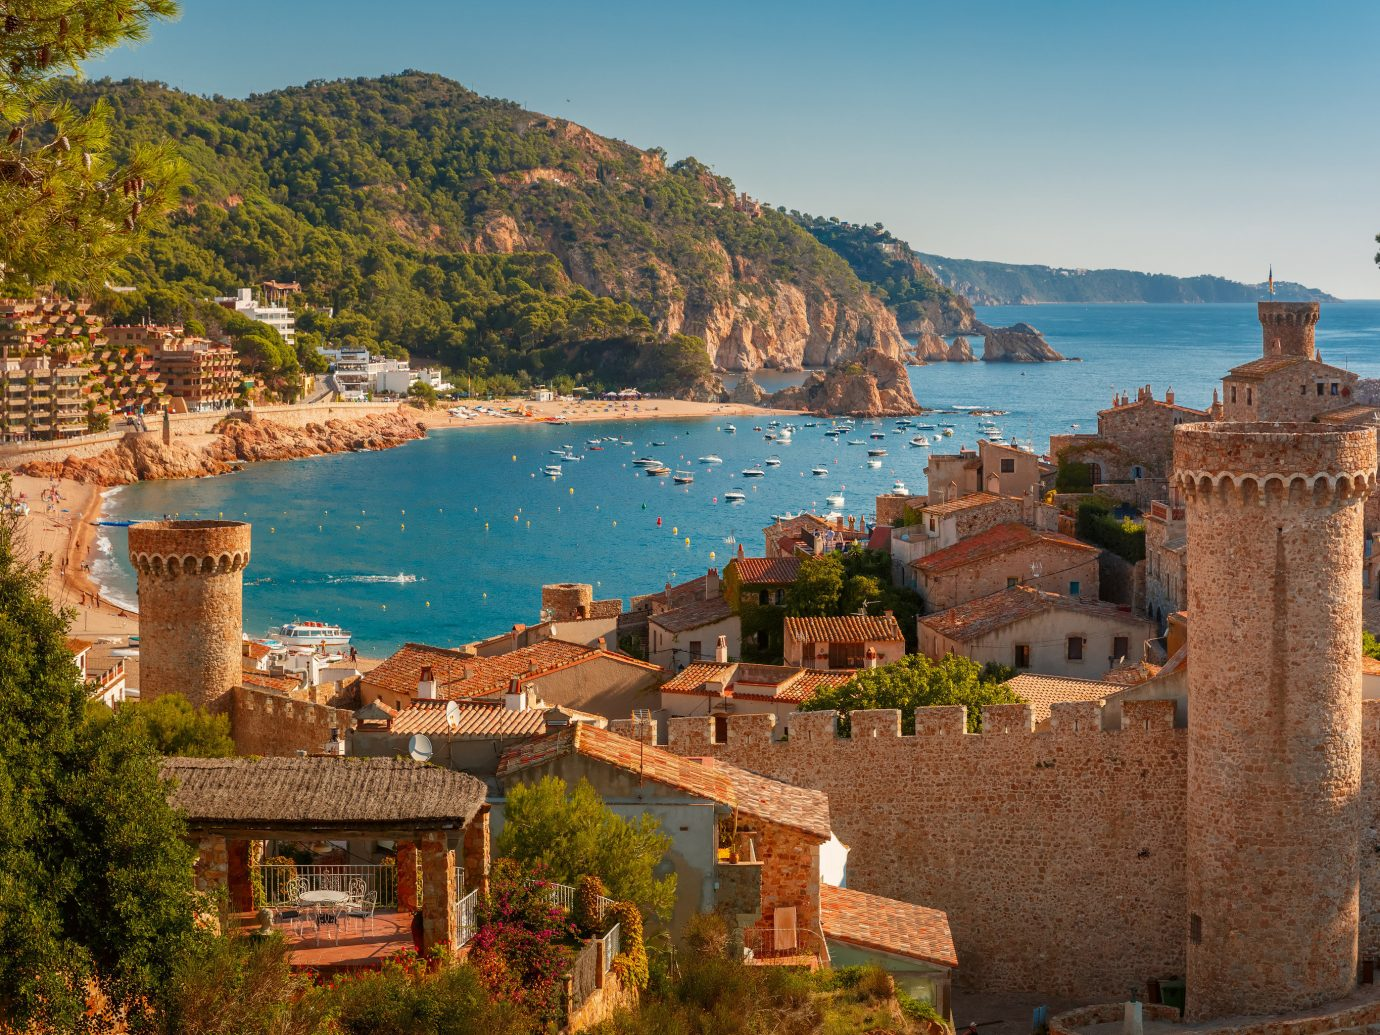 Beach tree outdoor mountain Town building vacation Coast Sea tourism River fortification landscape estate Village bay overlooking cliff Lake terrain castle hillside